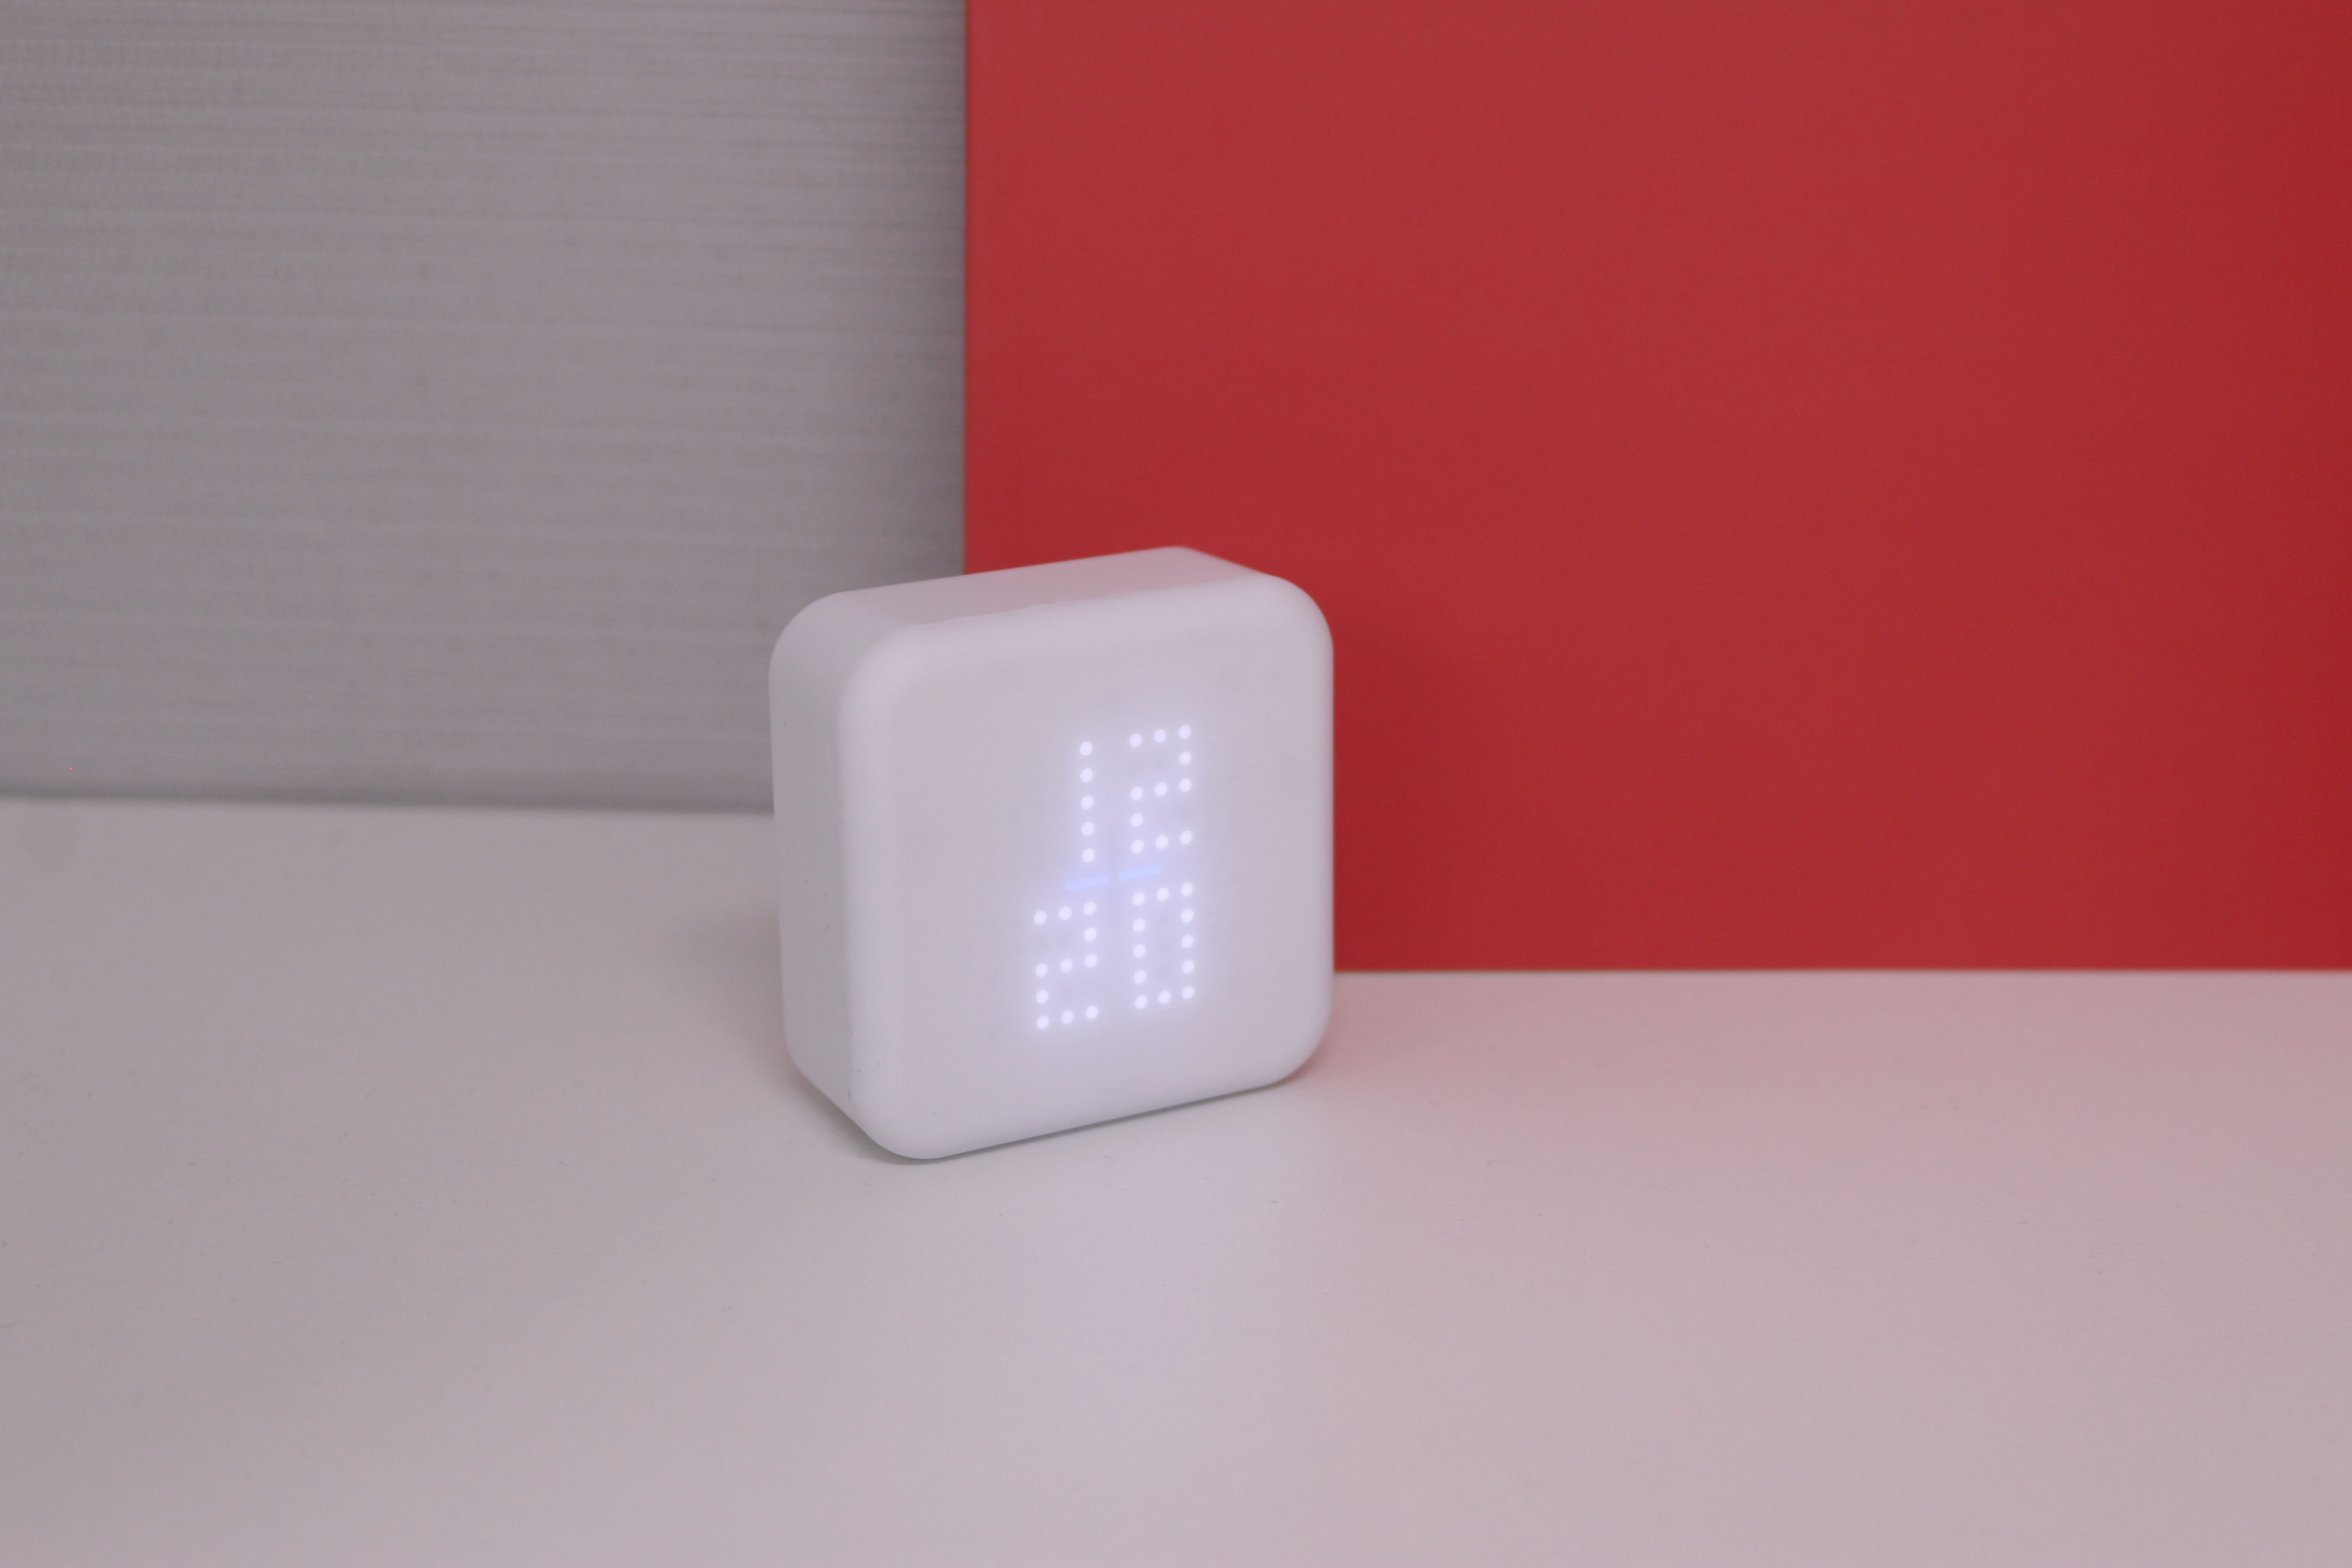 KP-A307 : Smart Time Controller (REMIT)